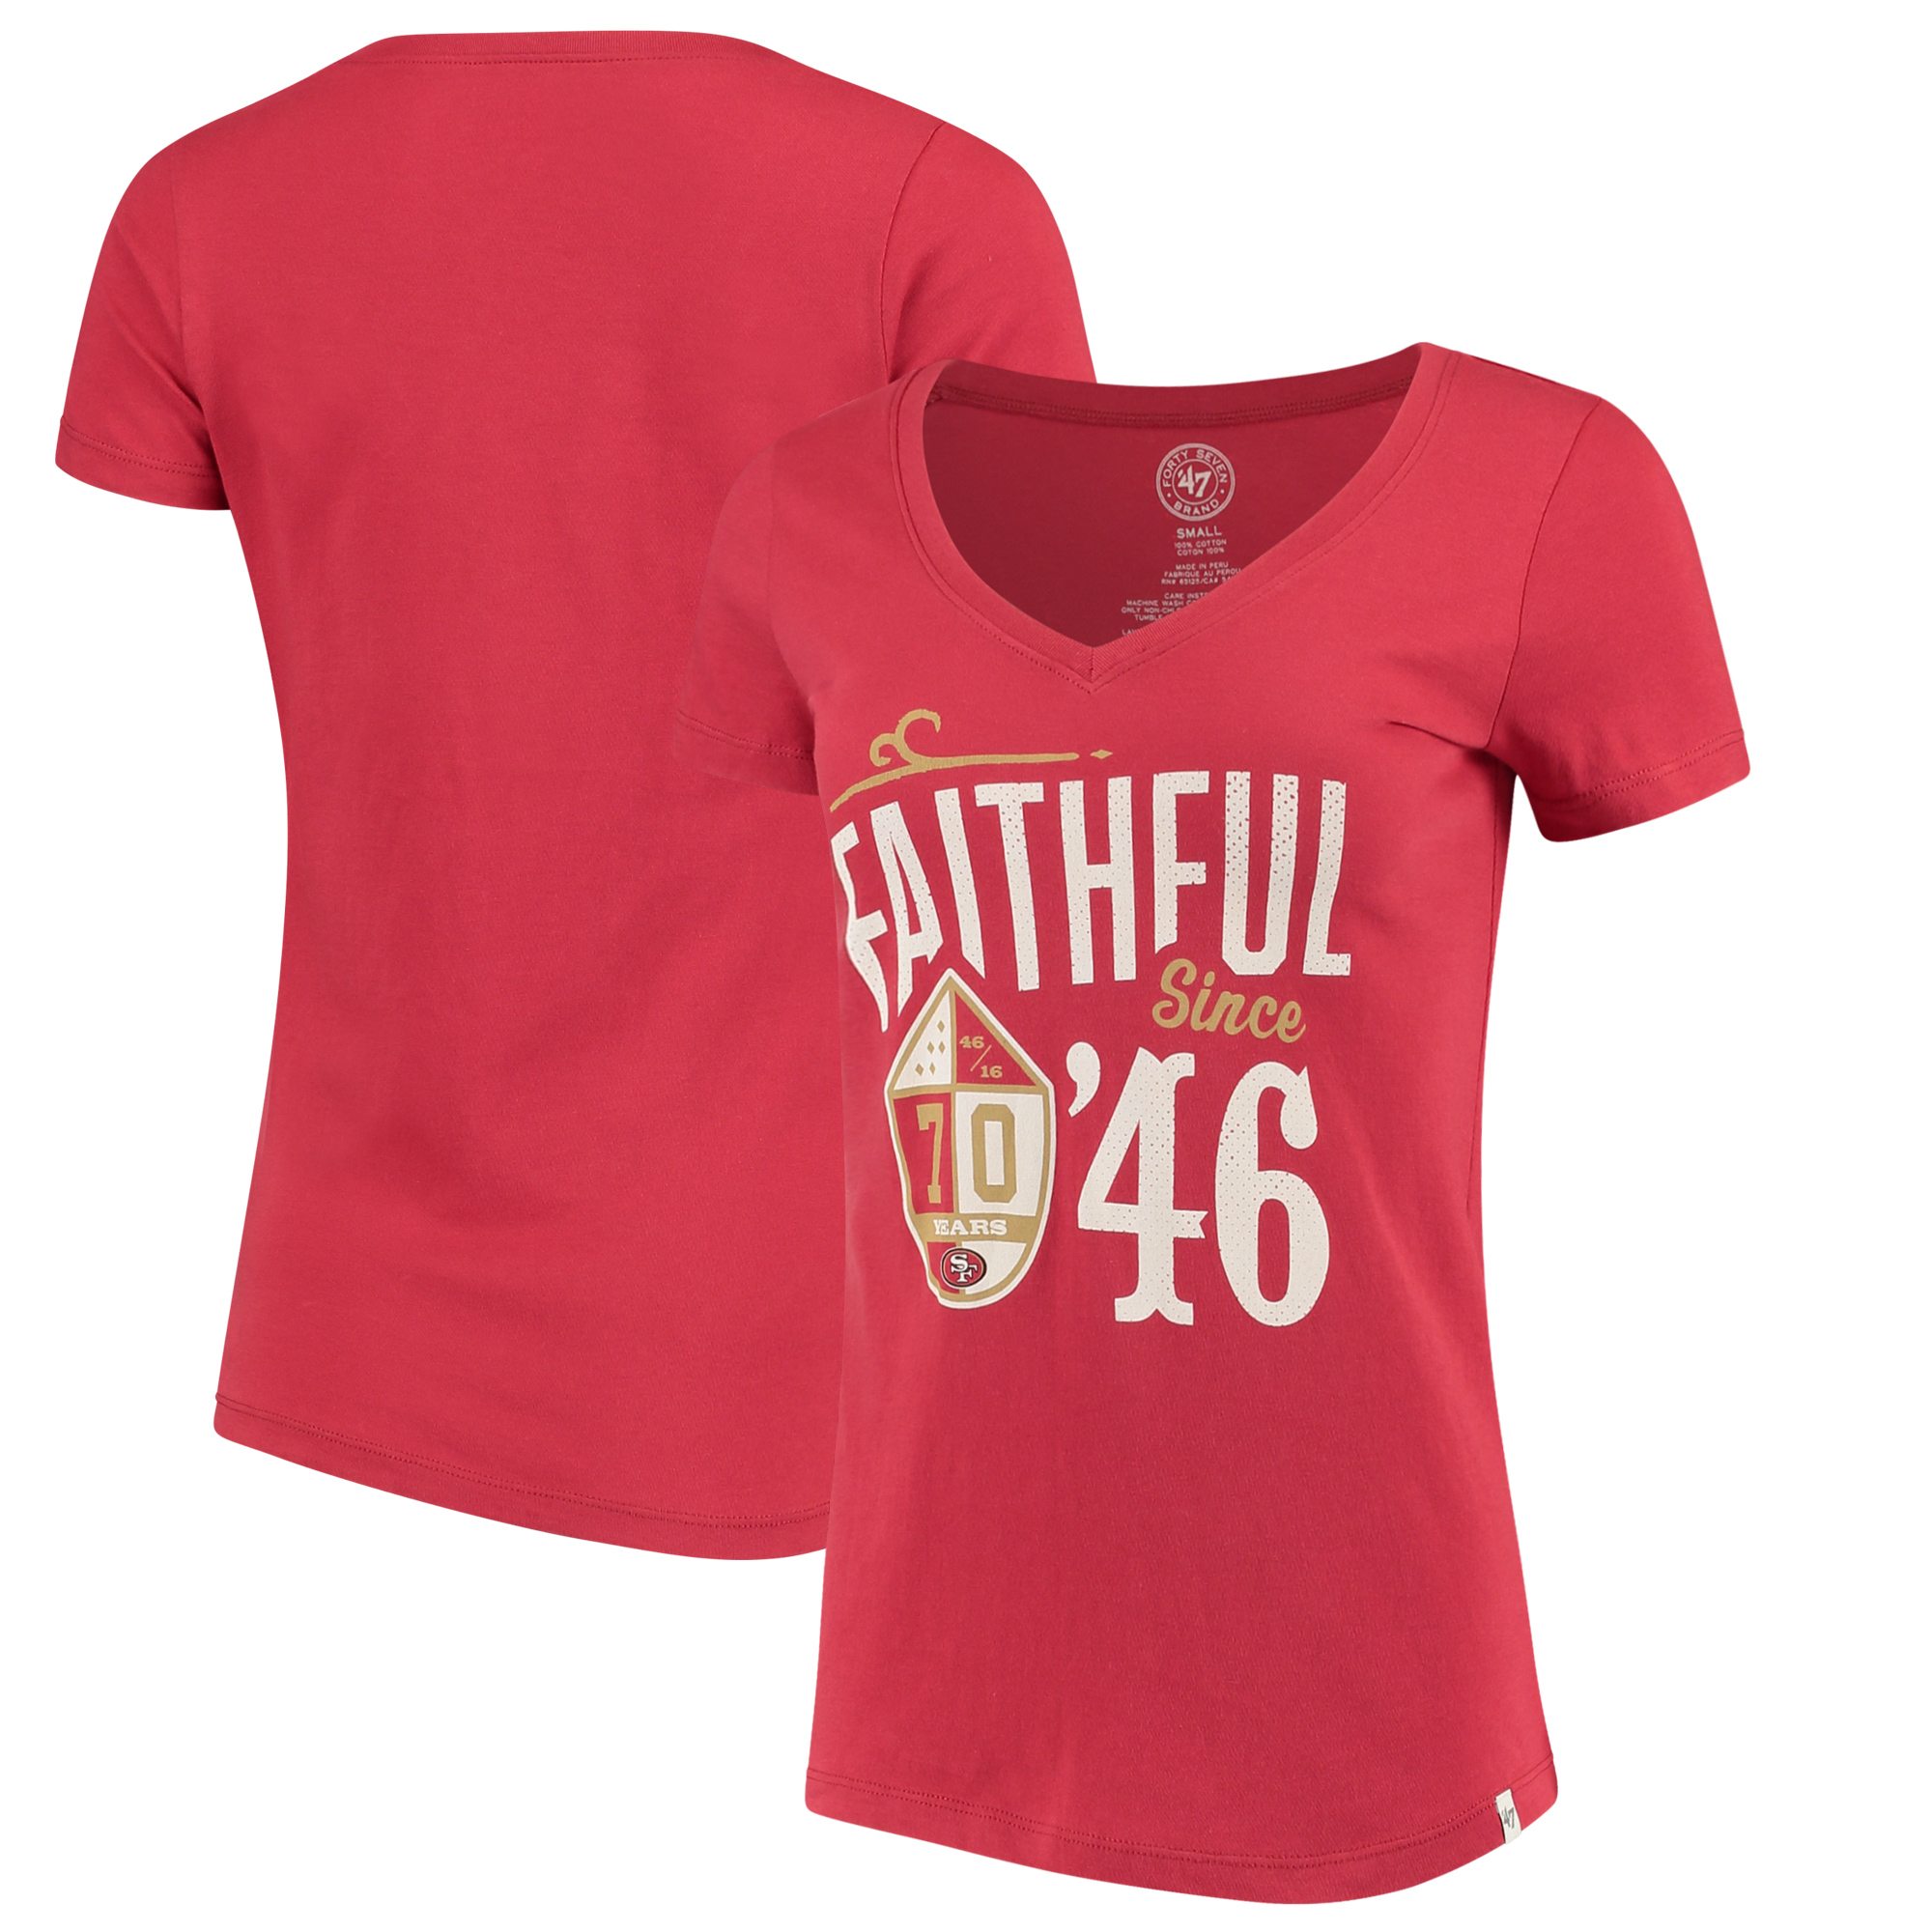 San Francisco 49ers '47 Women's Faithful V-Neck T-Shirt - Scarlet